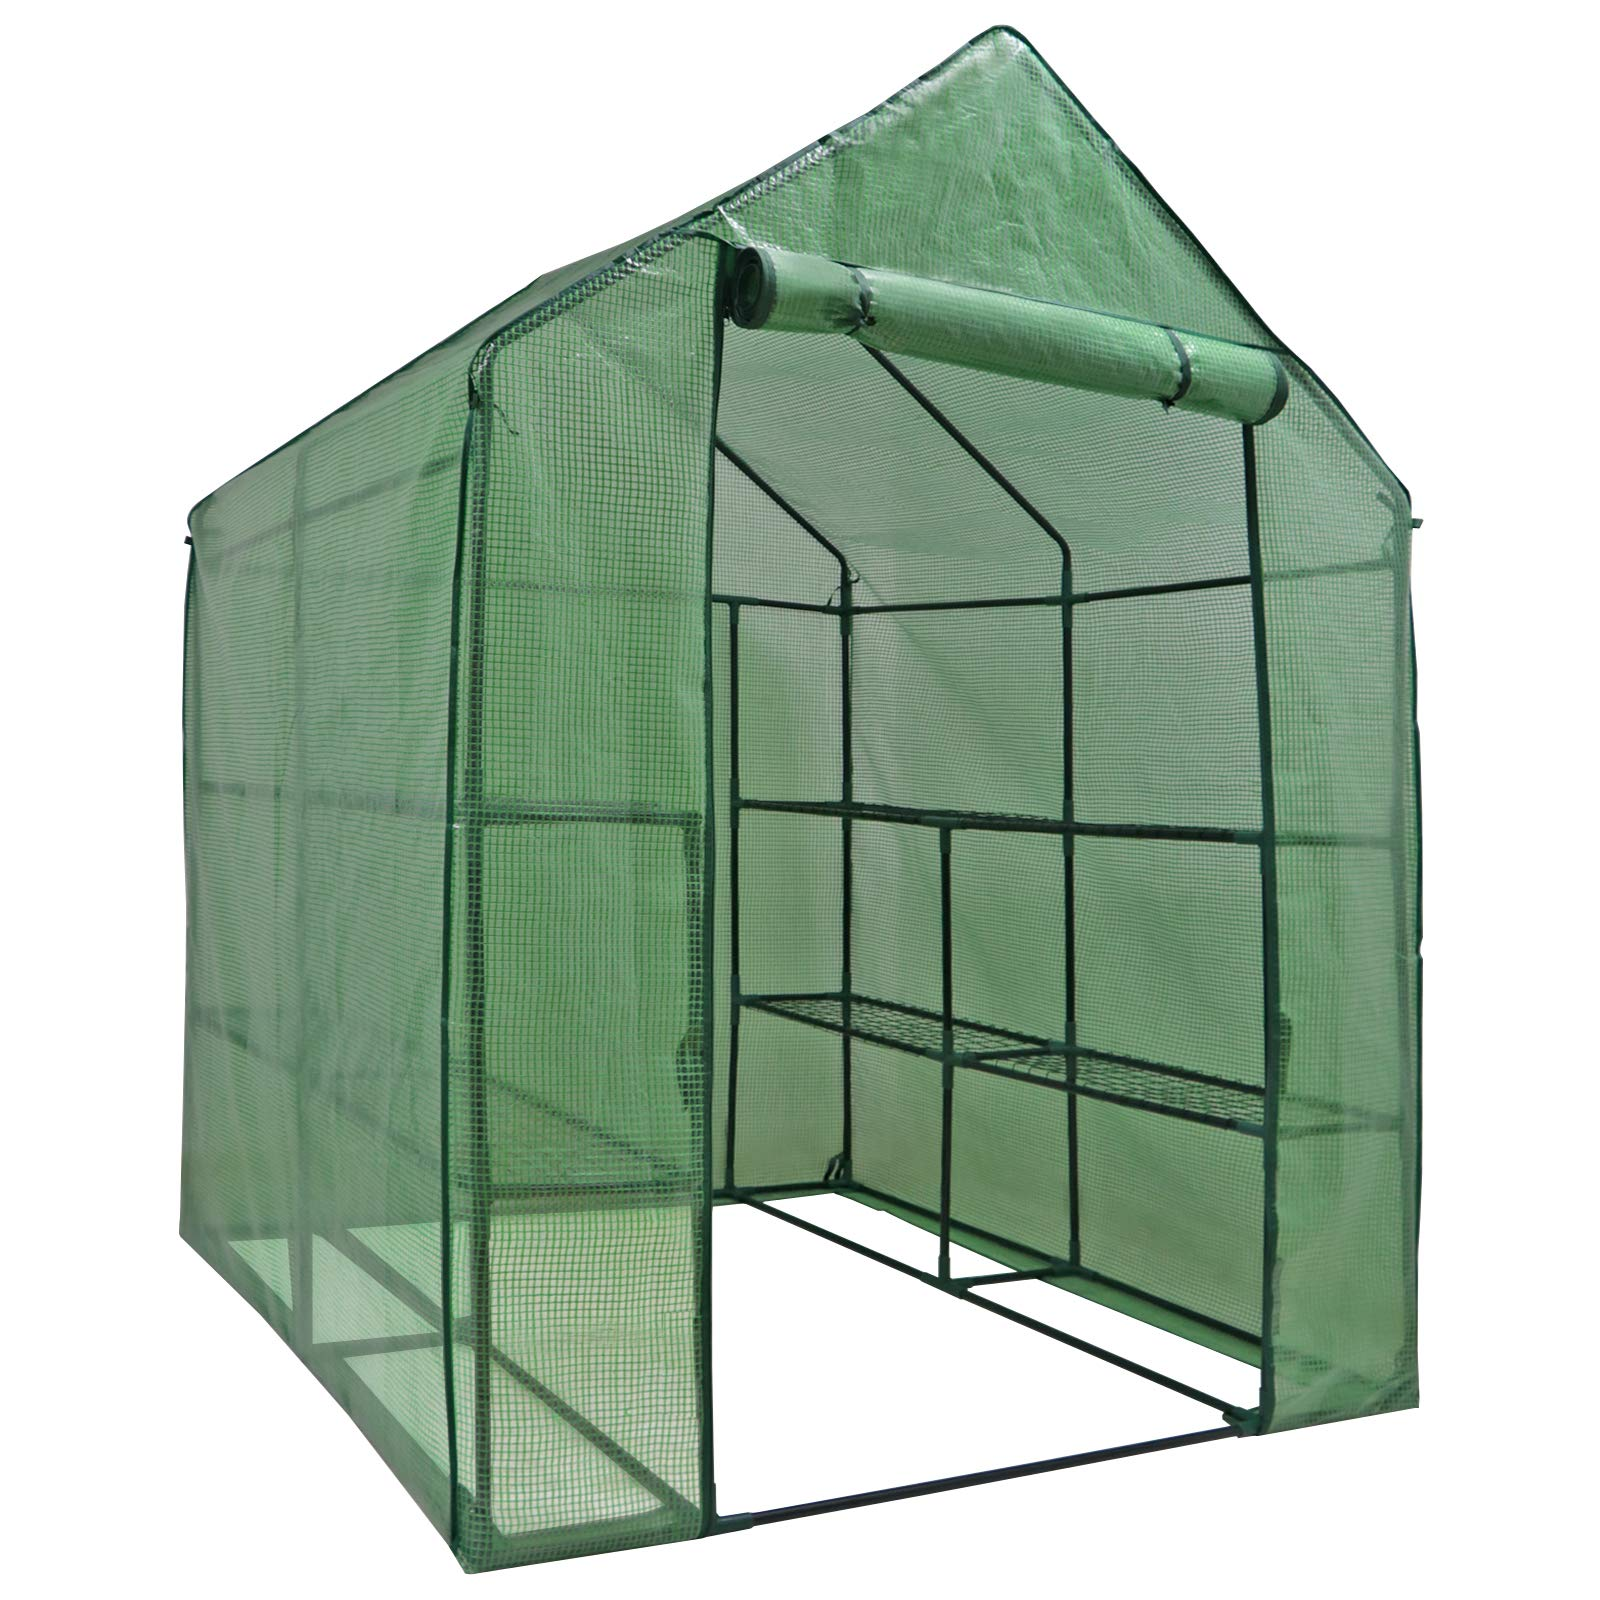 Waterproof Hot House UV Protected Plant Lean-to Greenhouse  78 x 39 x 85